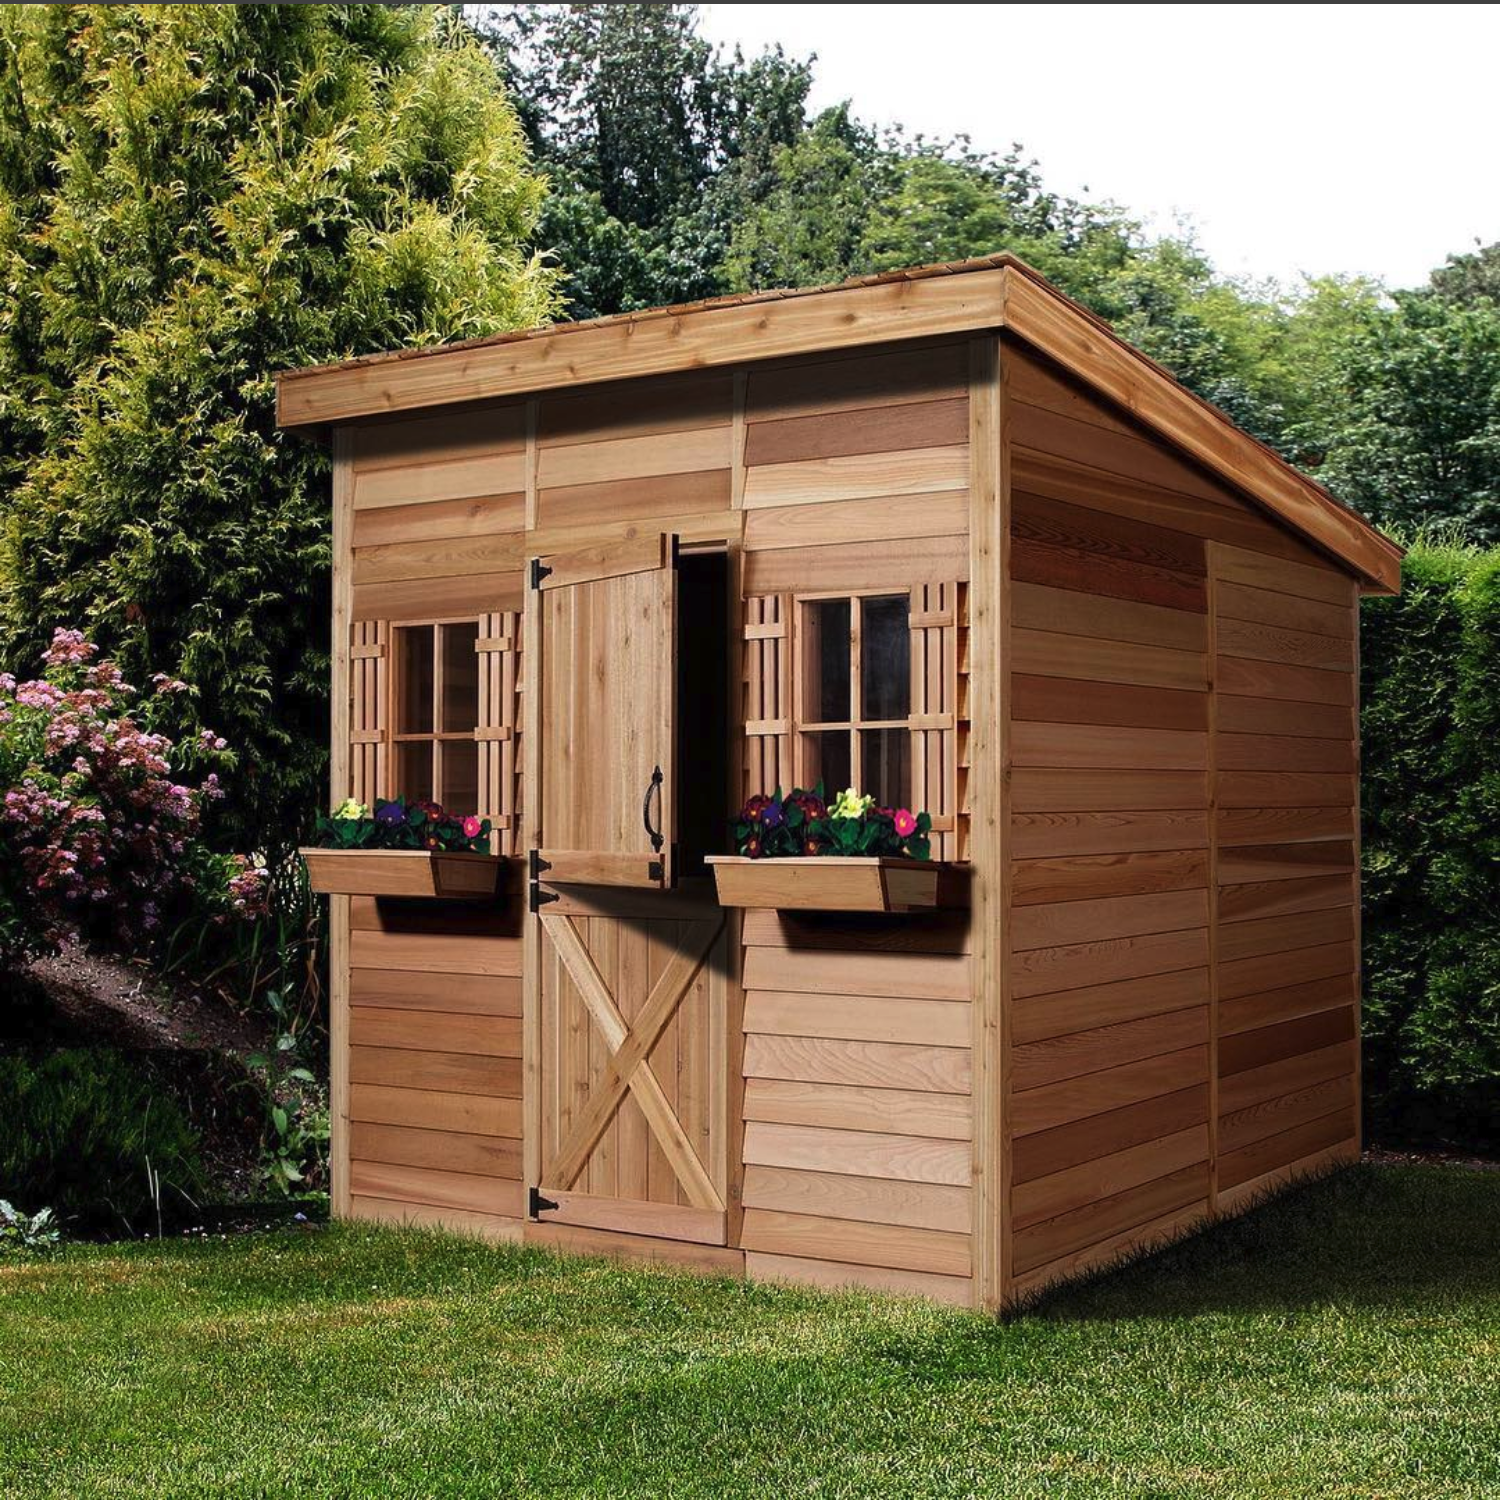 Diy garden office Narrow Garden Man Cave She Shed Garden Office Studio Or Outdoor Room The Diy Studio Shed Provides Private Creative Space In Your Own Backyard Homegramco Man Cave She Shed Garden Office Studio Or Outdoor Room The Diy